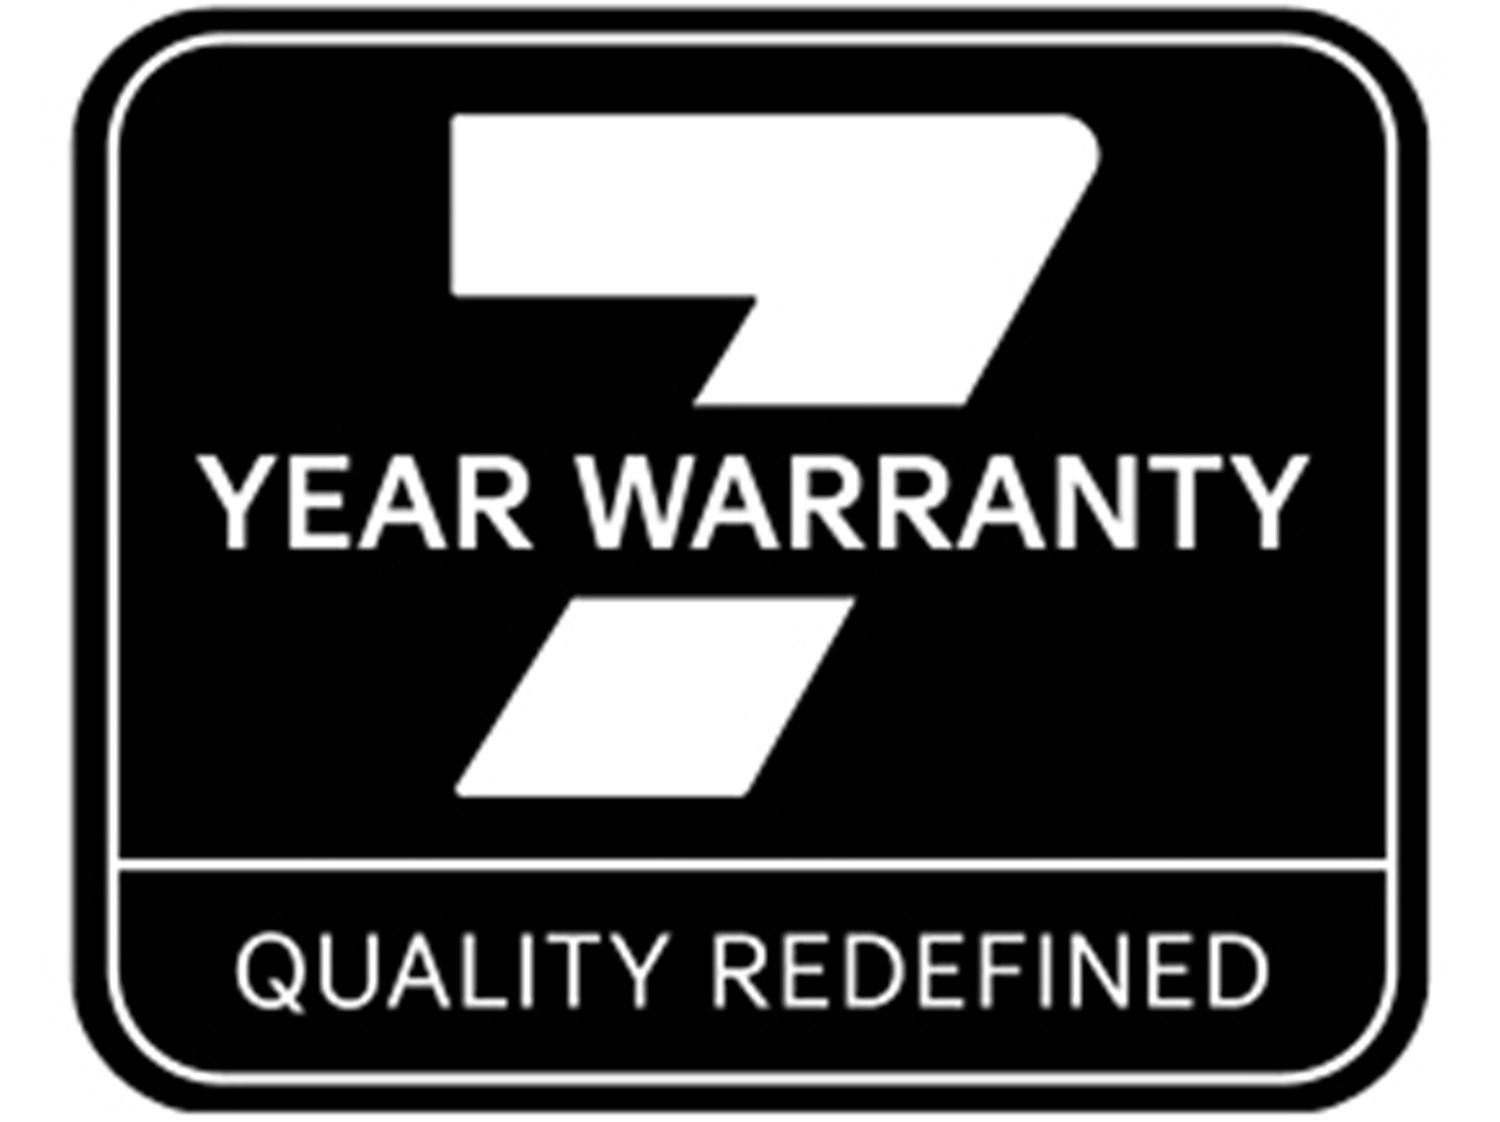 Kia 7 Year Warranty new 2021 Branding